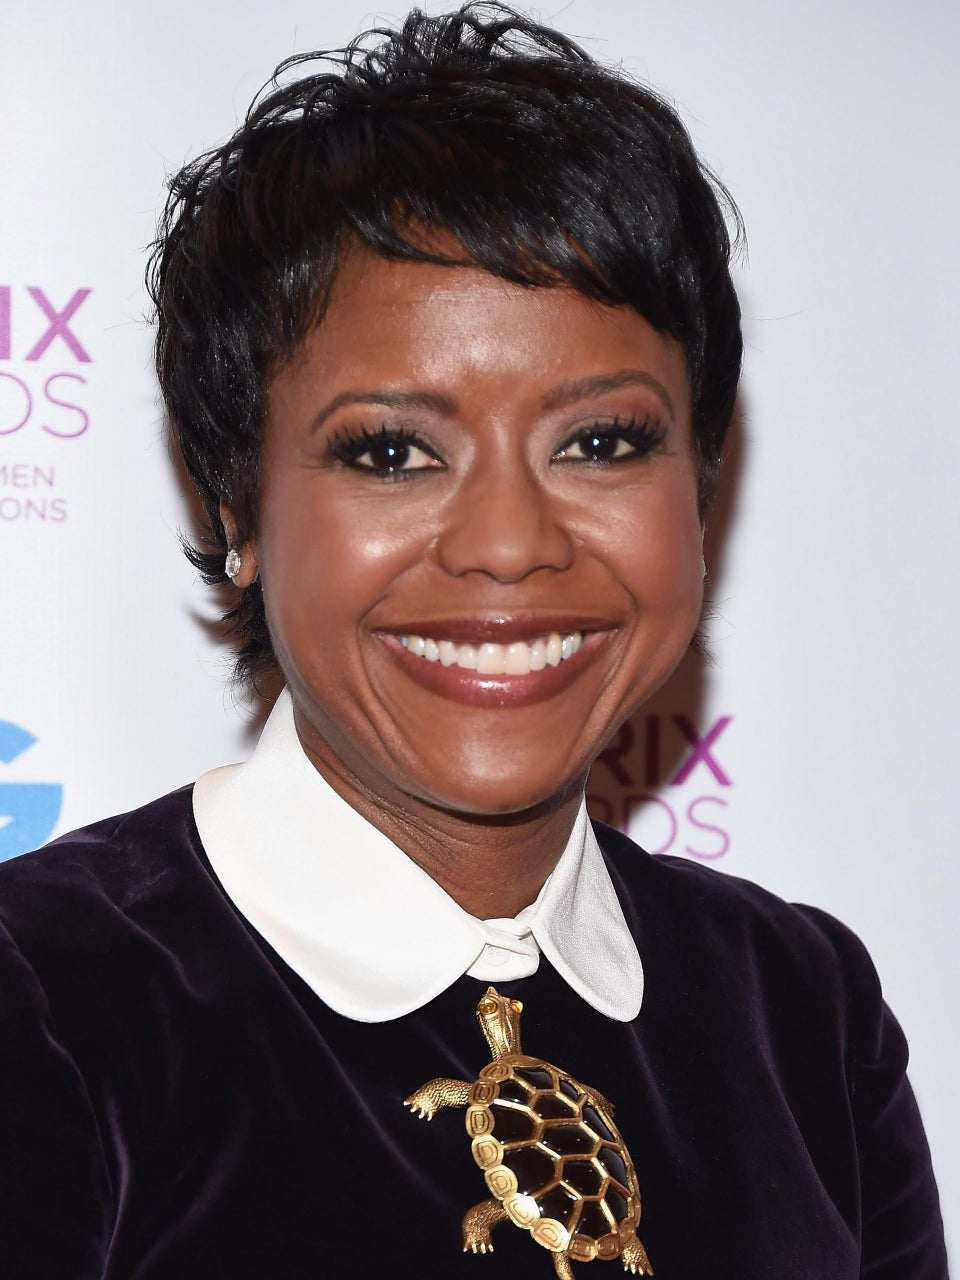 Mellody Hobson Makes History As First Black Woman To Have Princeton Residence College In Her Name